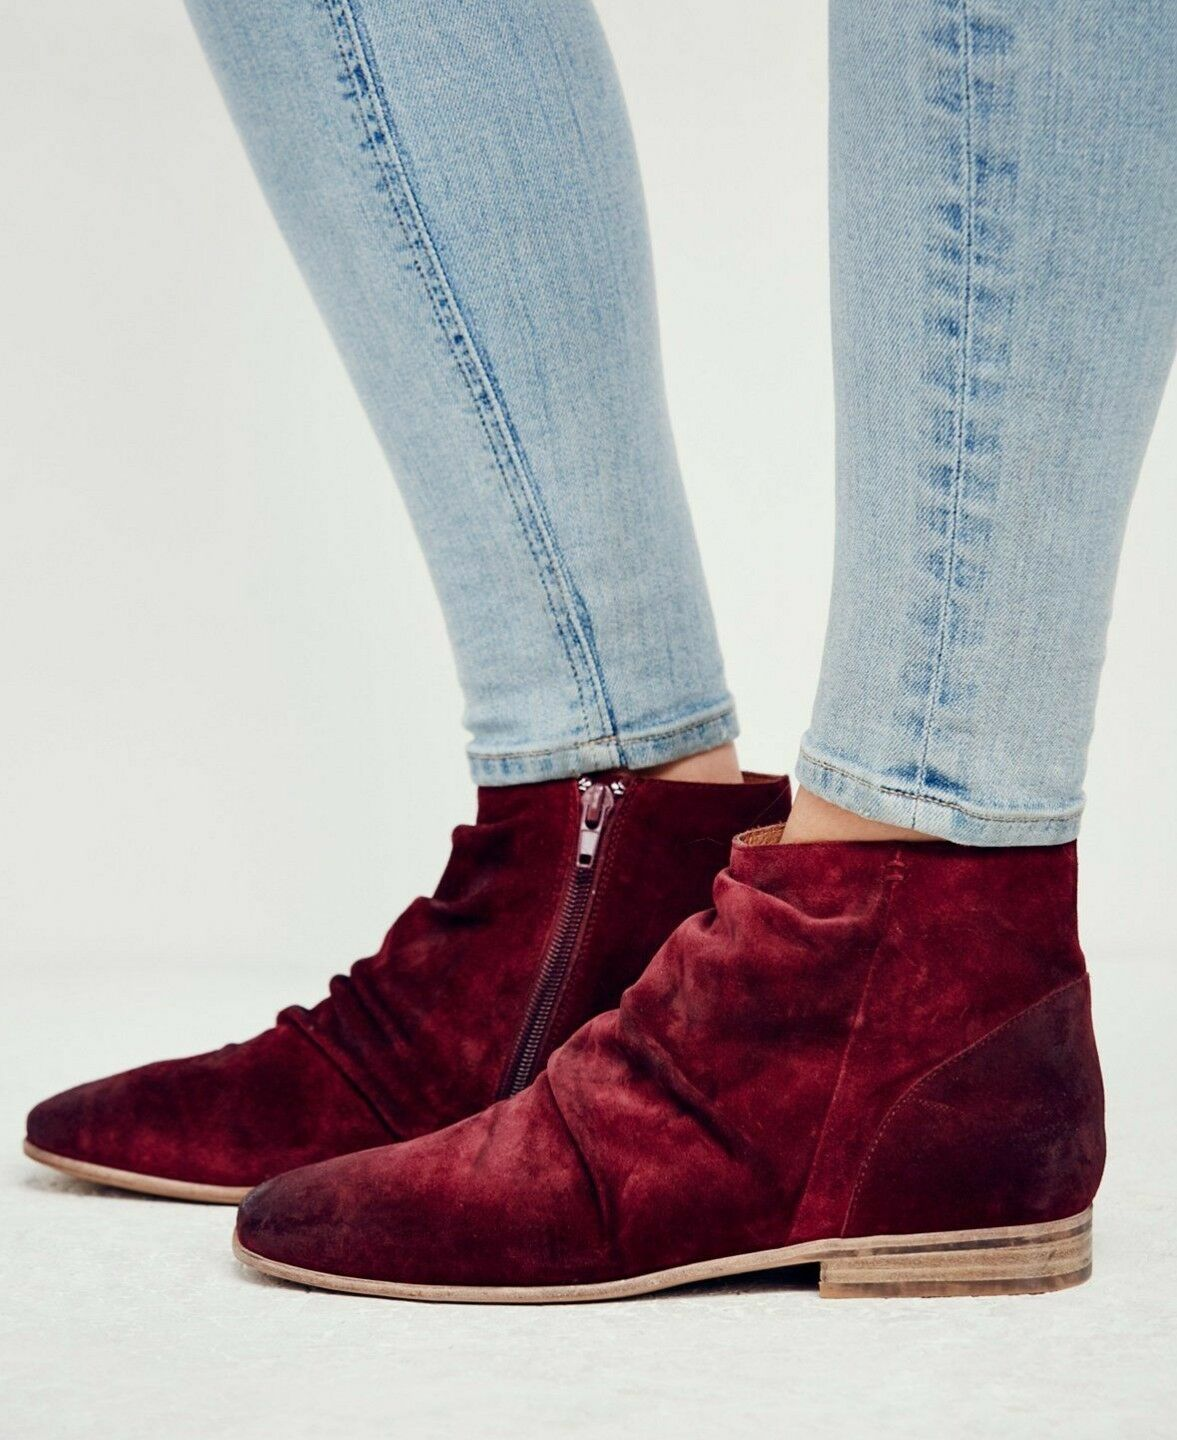 Jeffrey Campbell Speir Ruched Luxe Luxe Luxe Wine Suede Slouchy Ankle bottes Taille 7.5 New 4e291e